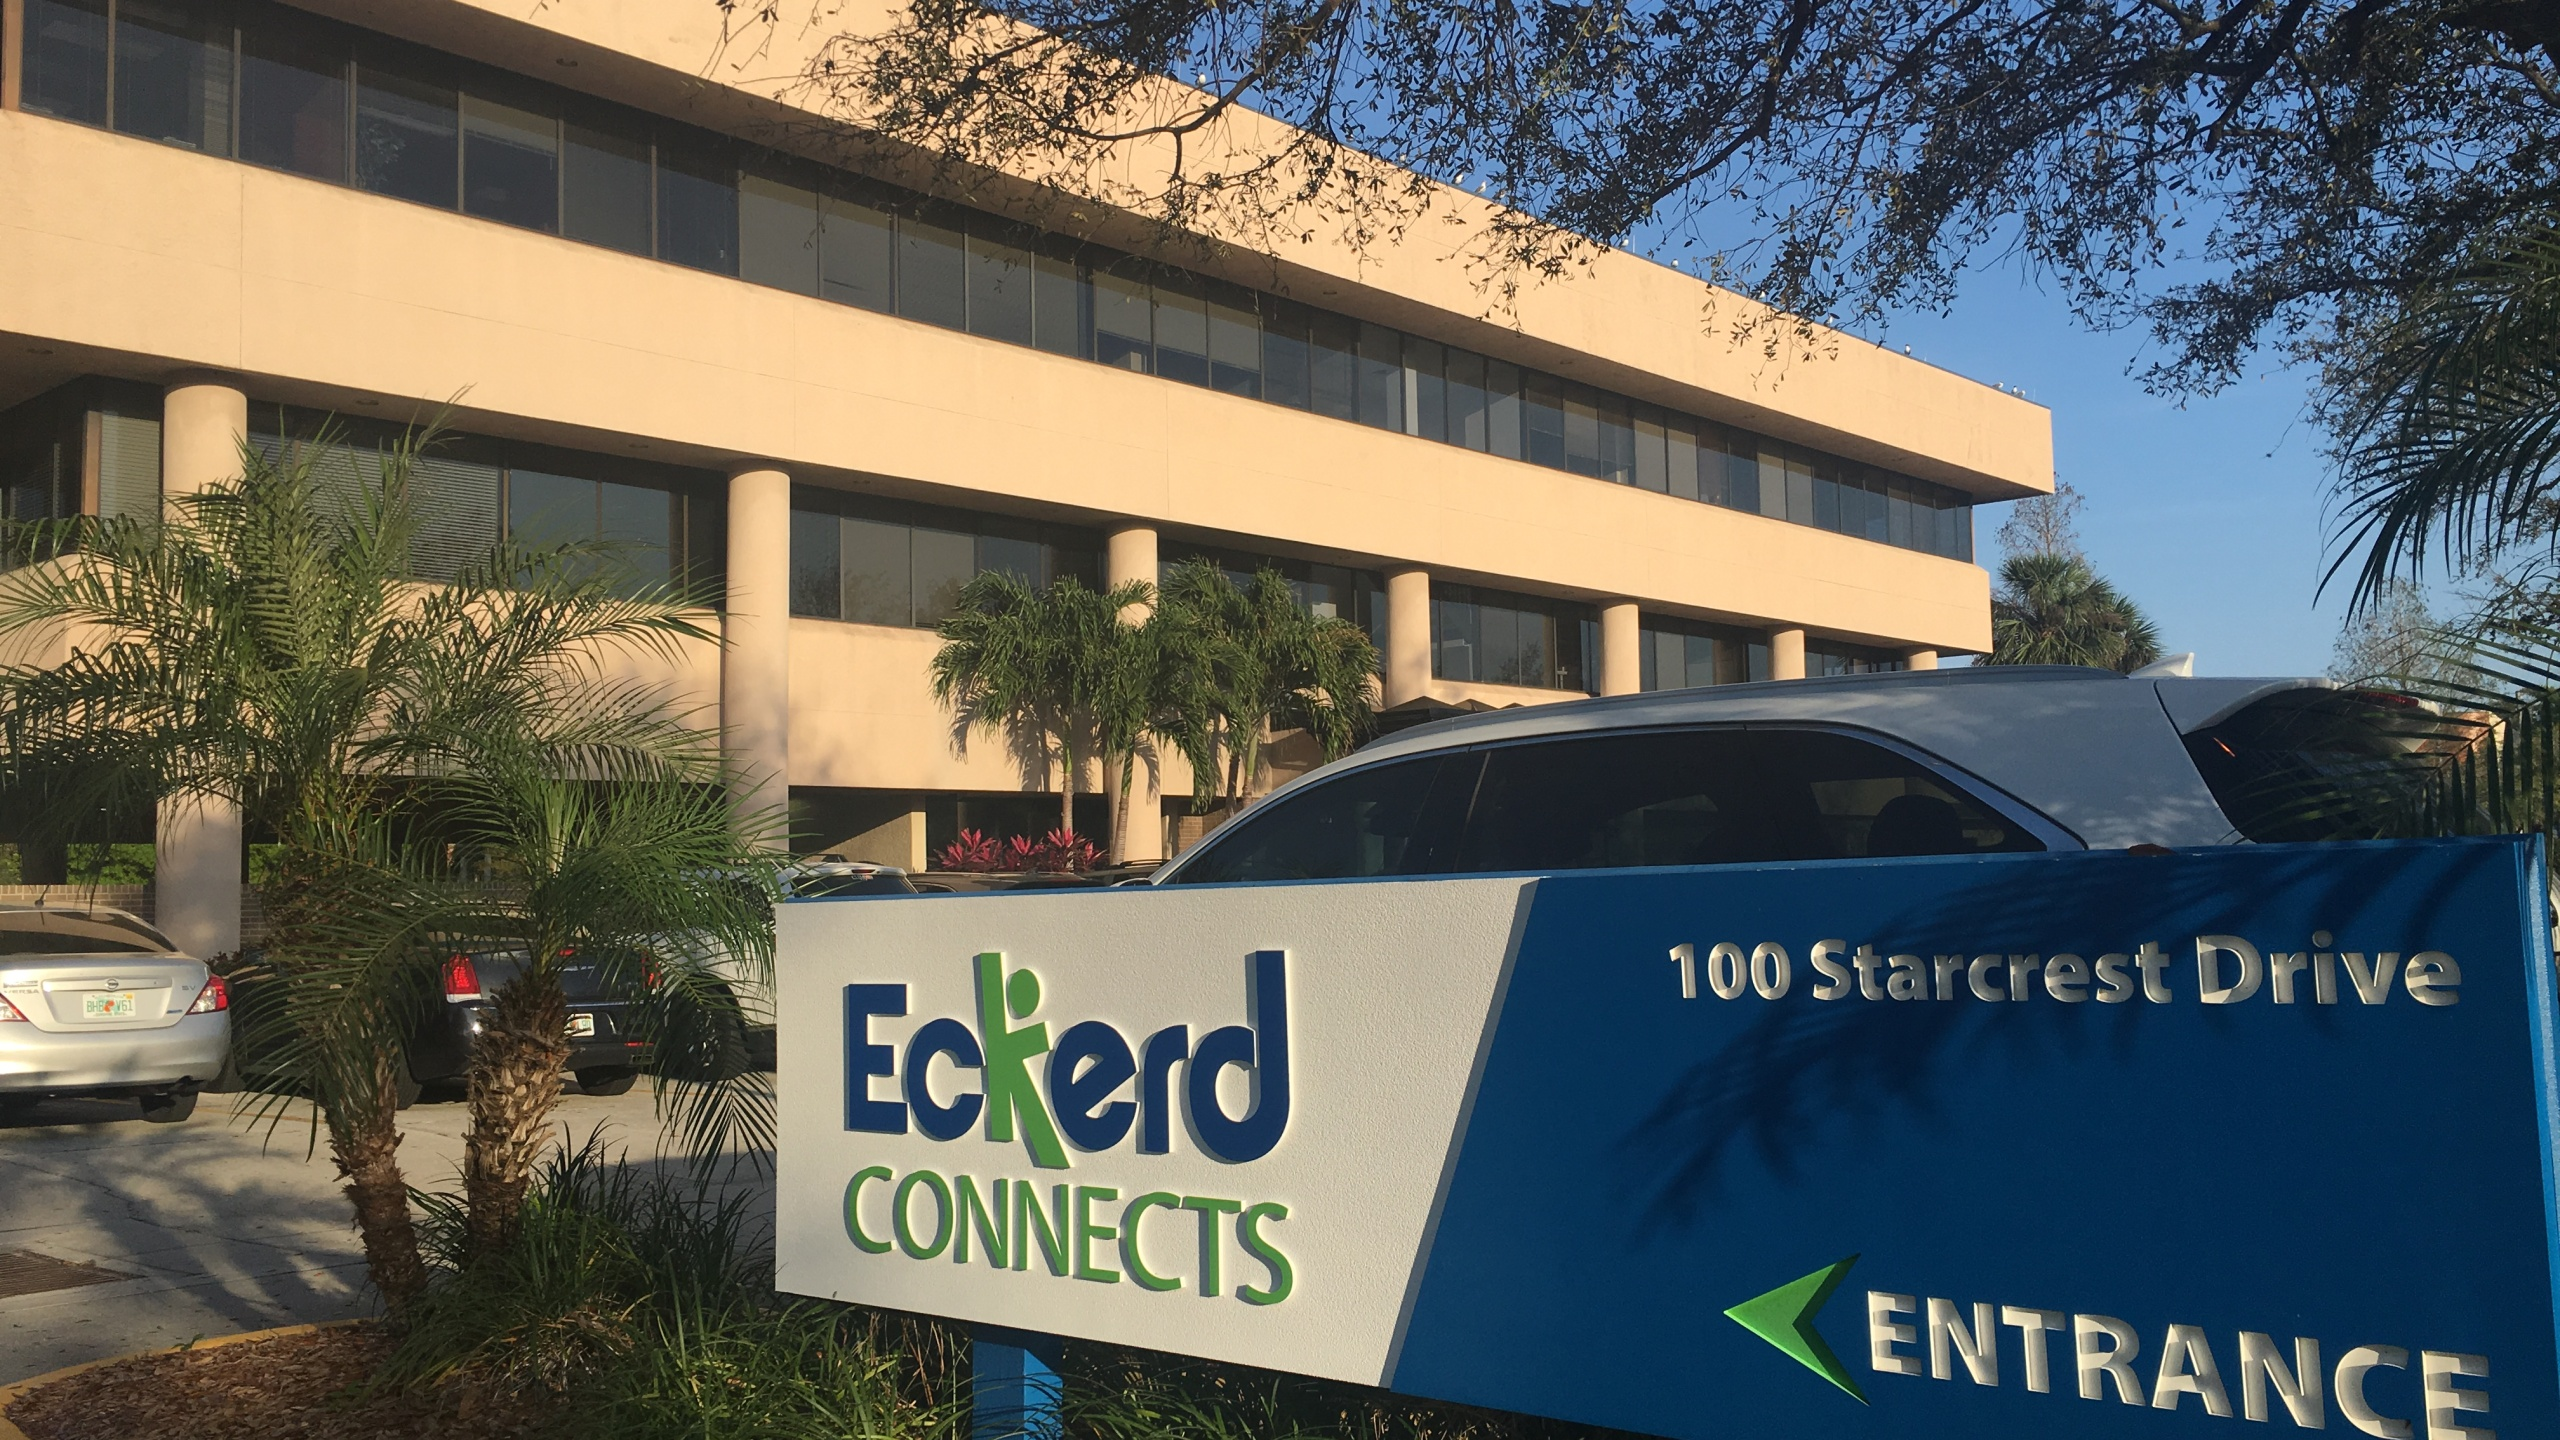 eckerd connects sign_576745